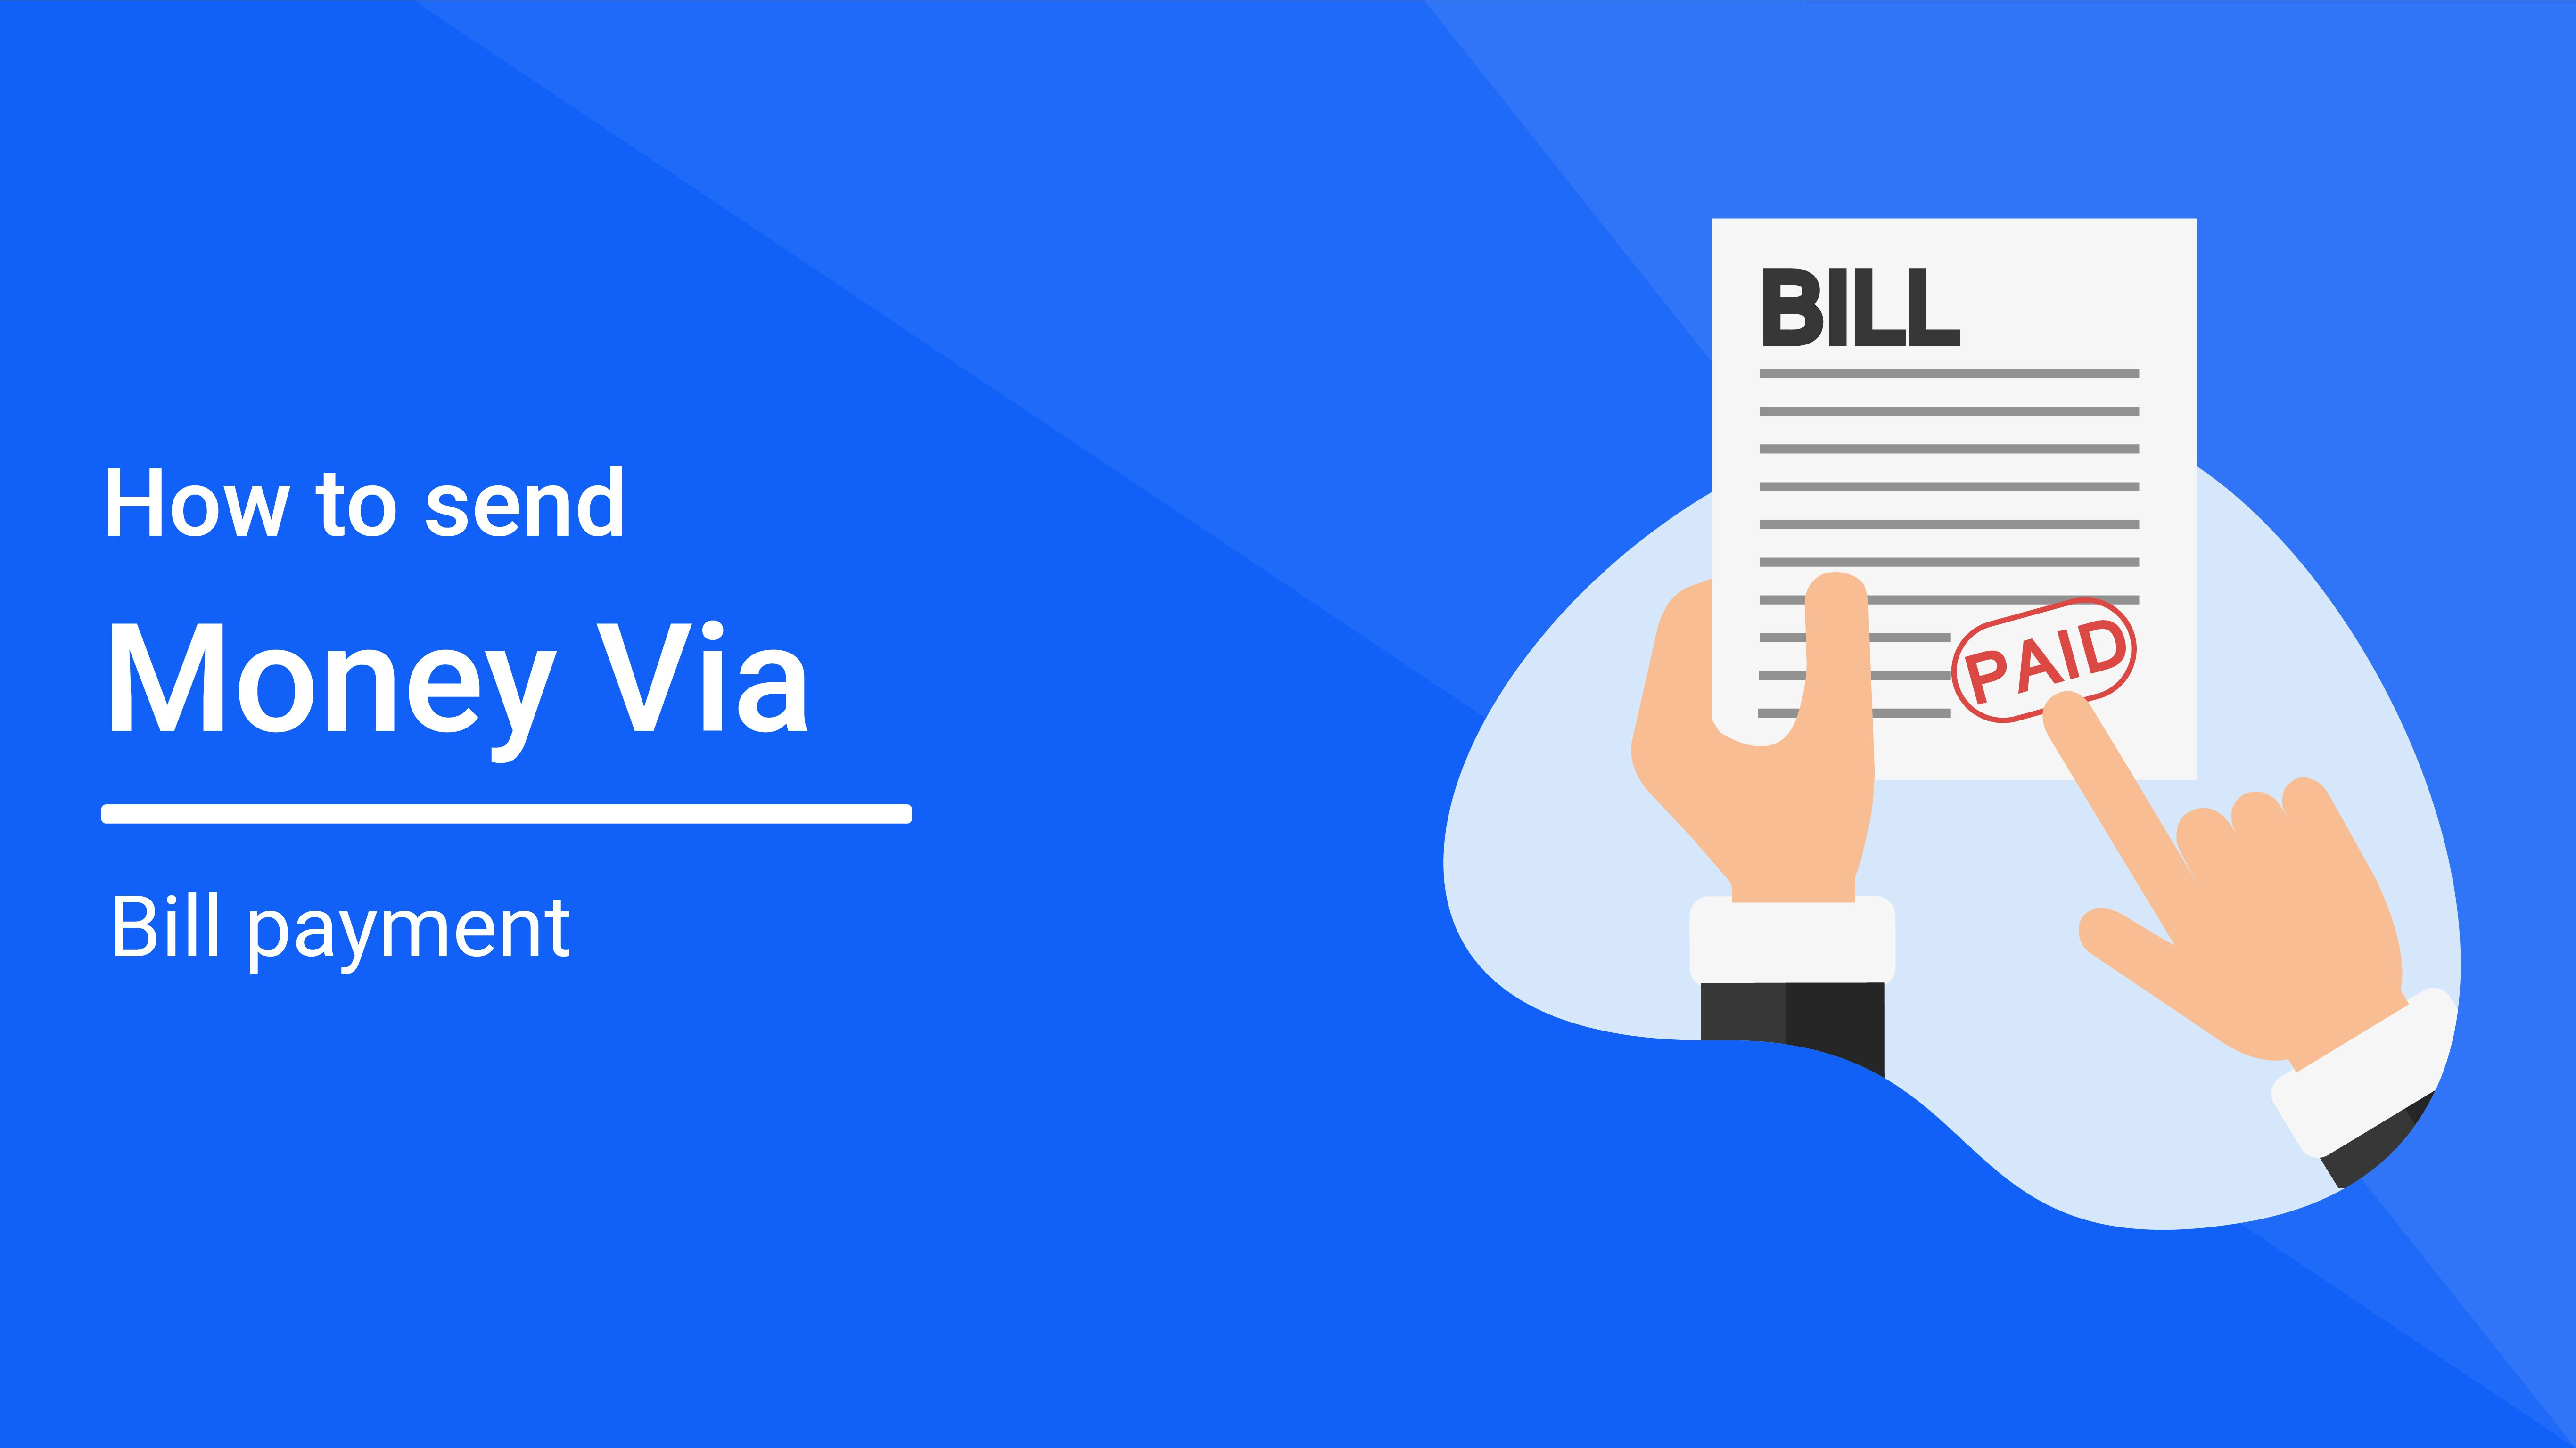 How to Fund a Transfer Through Your banks bill payment feature